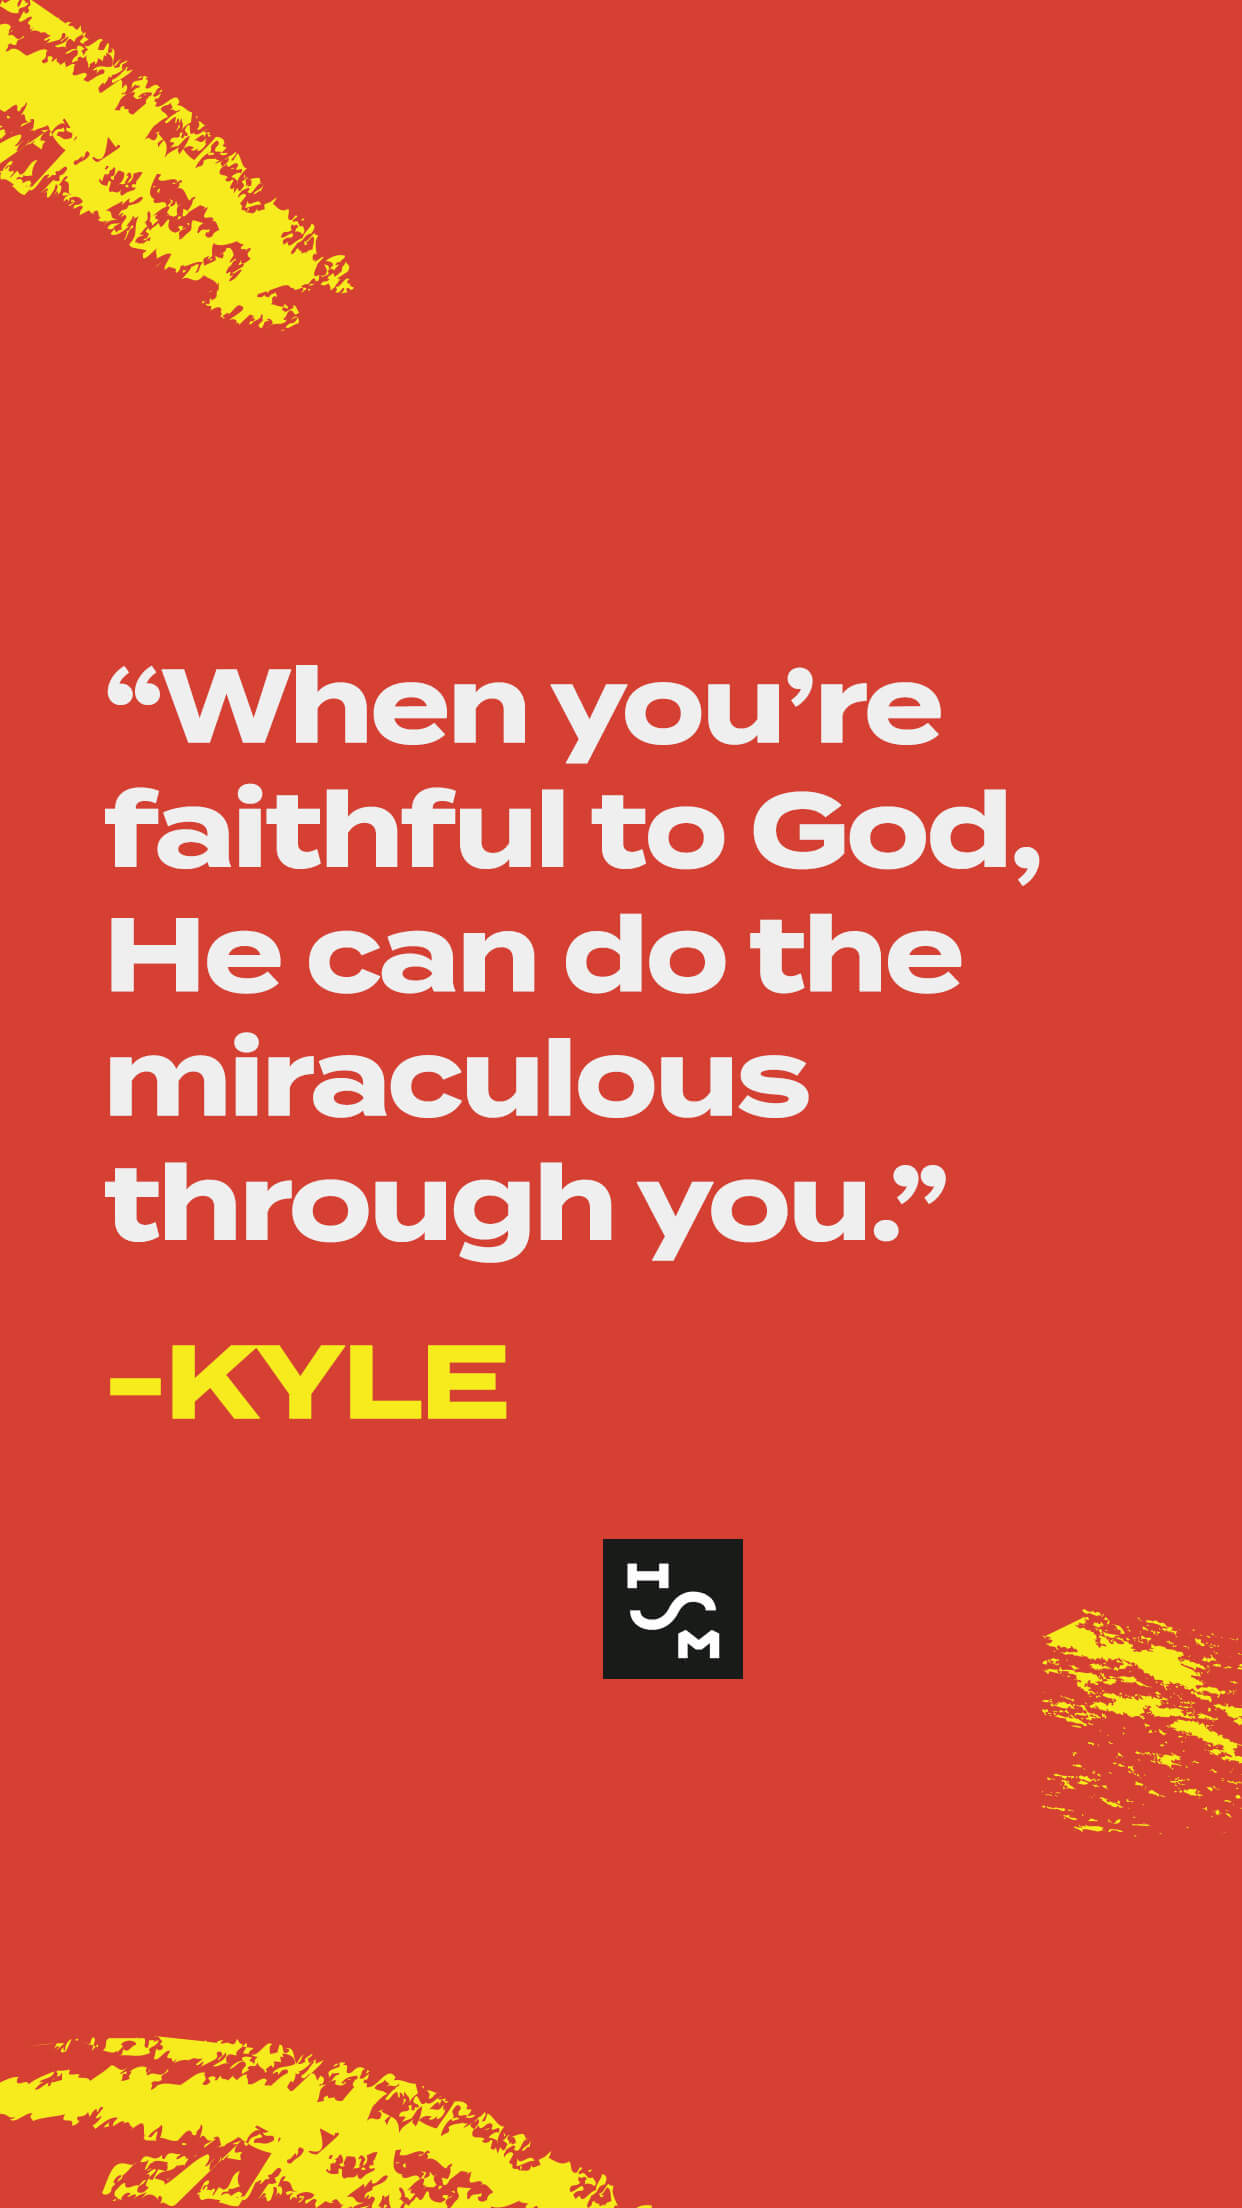 kyle quote